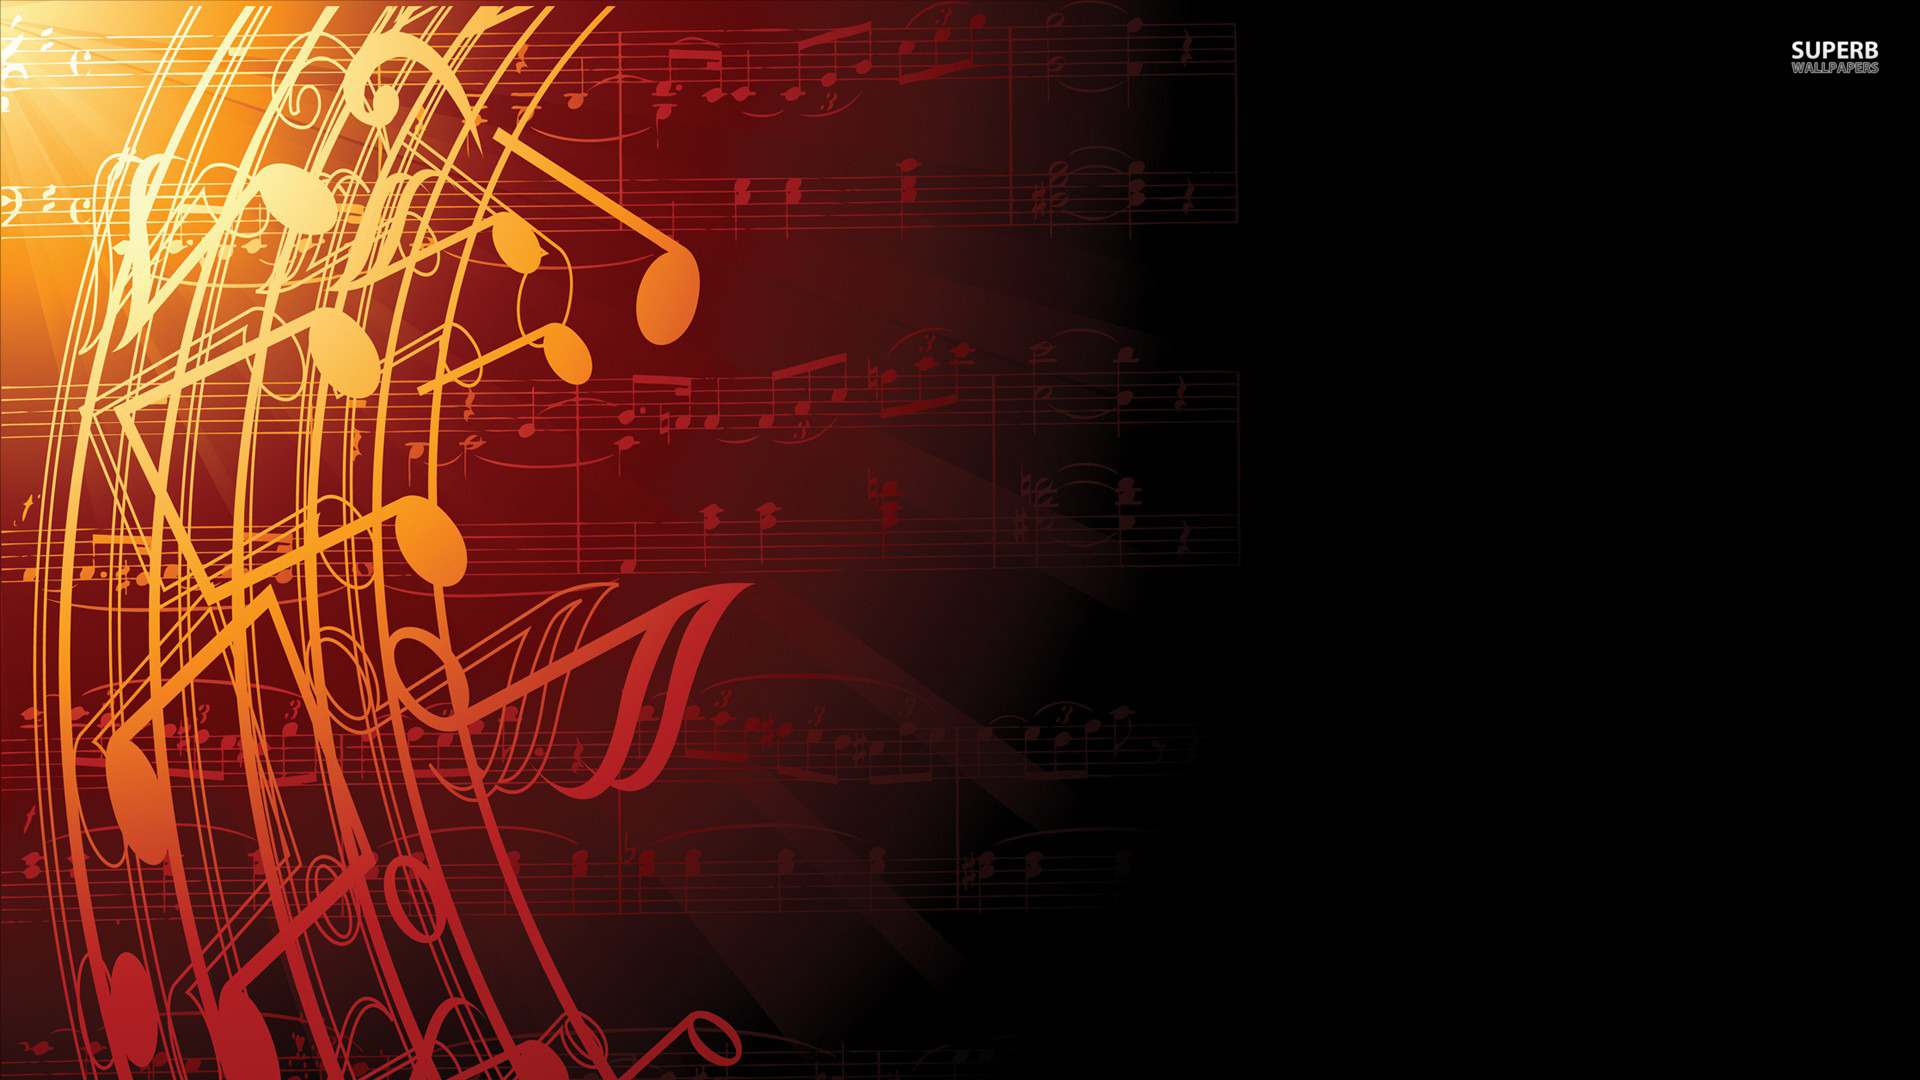 Wallpaper With Music WallpaperSafari